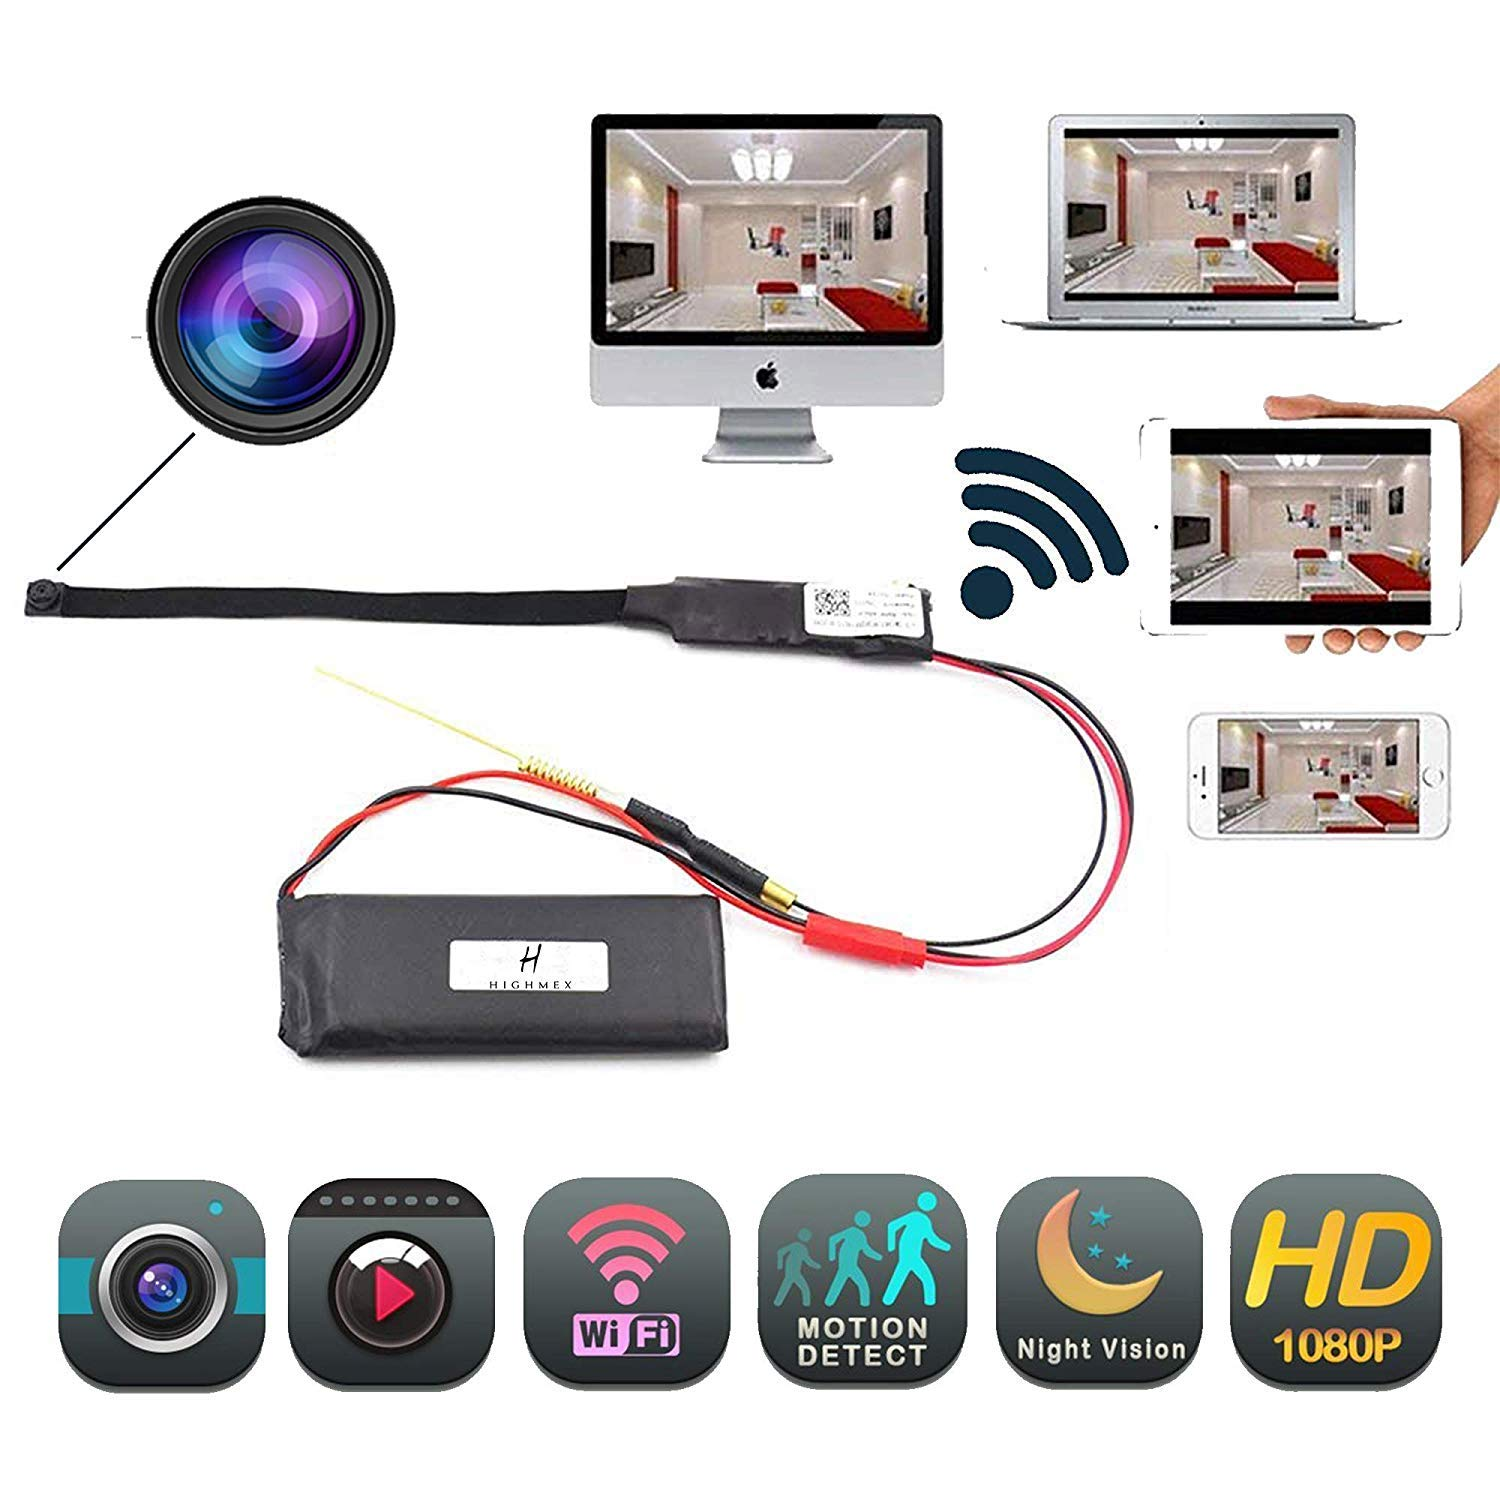 Hidden Camera 1080P HD Spy Nanny Cam Mini Small Wireless WiFi Security Camera Motion Detection Alarm Home Cameras Remote for iPhone/Android Phone/iPad/PC